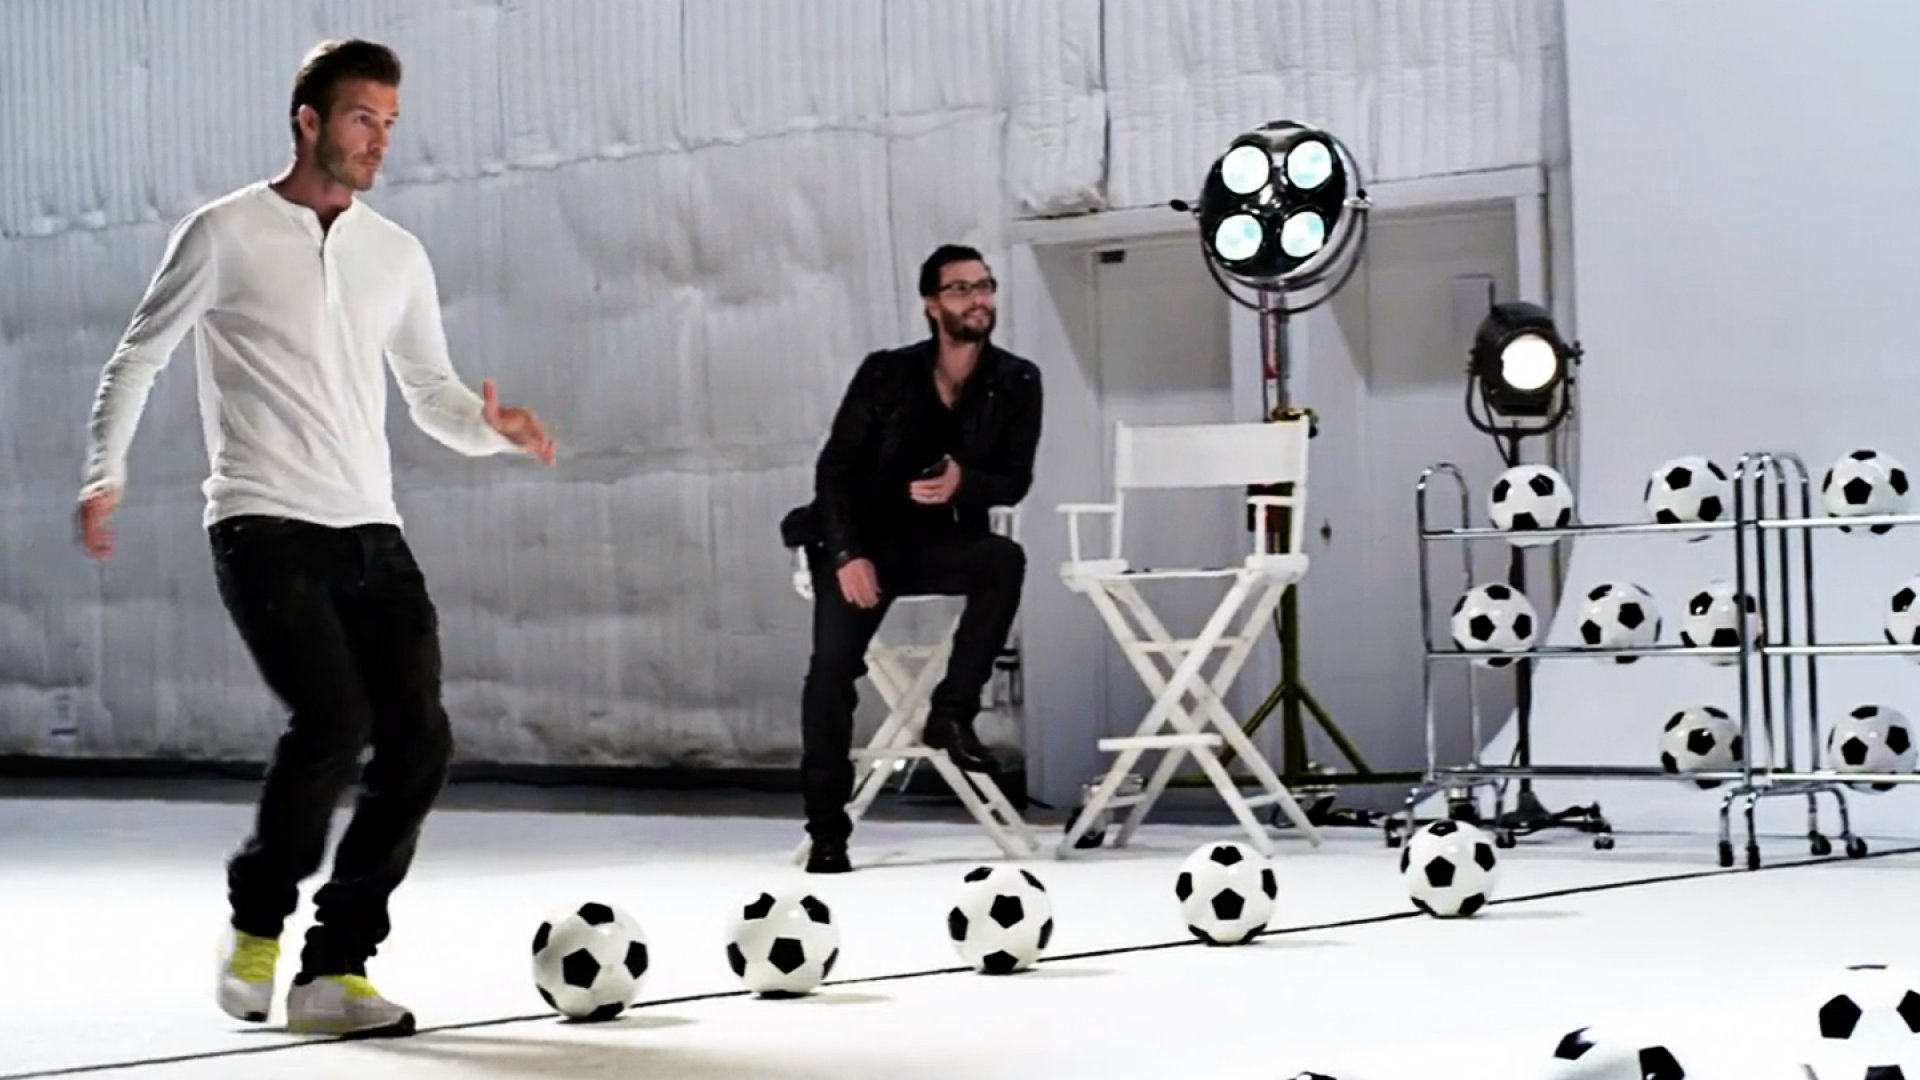 Samsung hired David Beckham to appear in its 2012 Olympics spots.